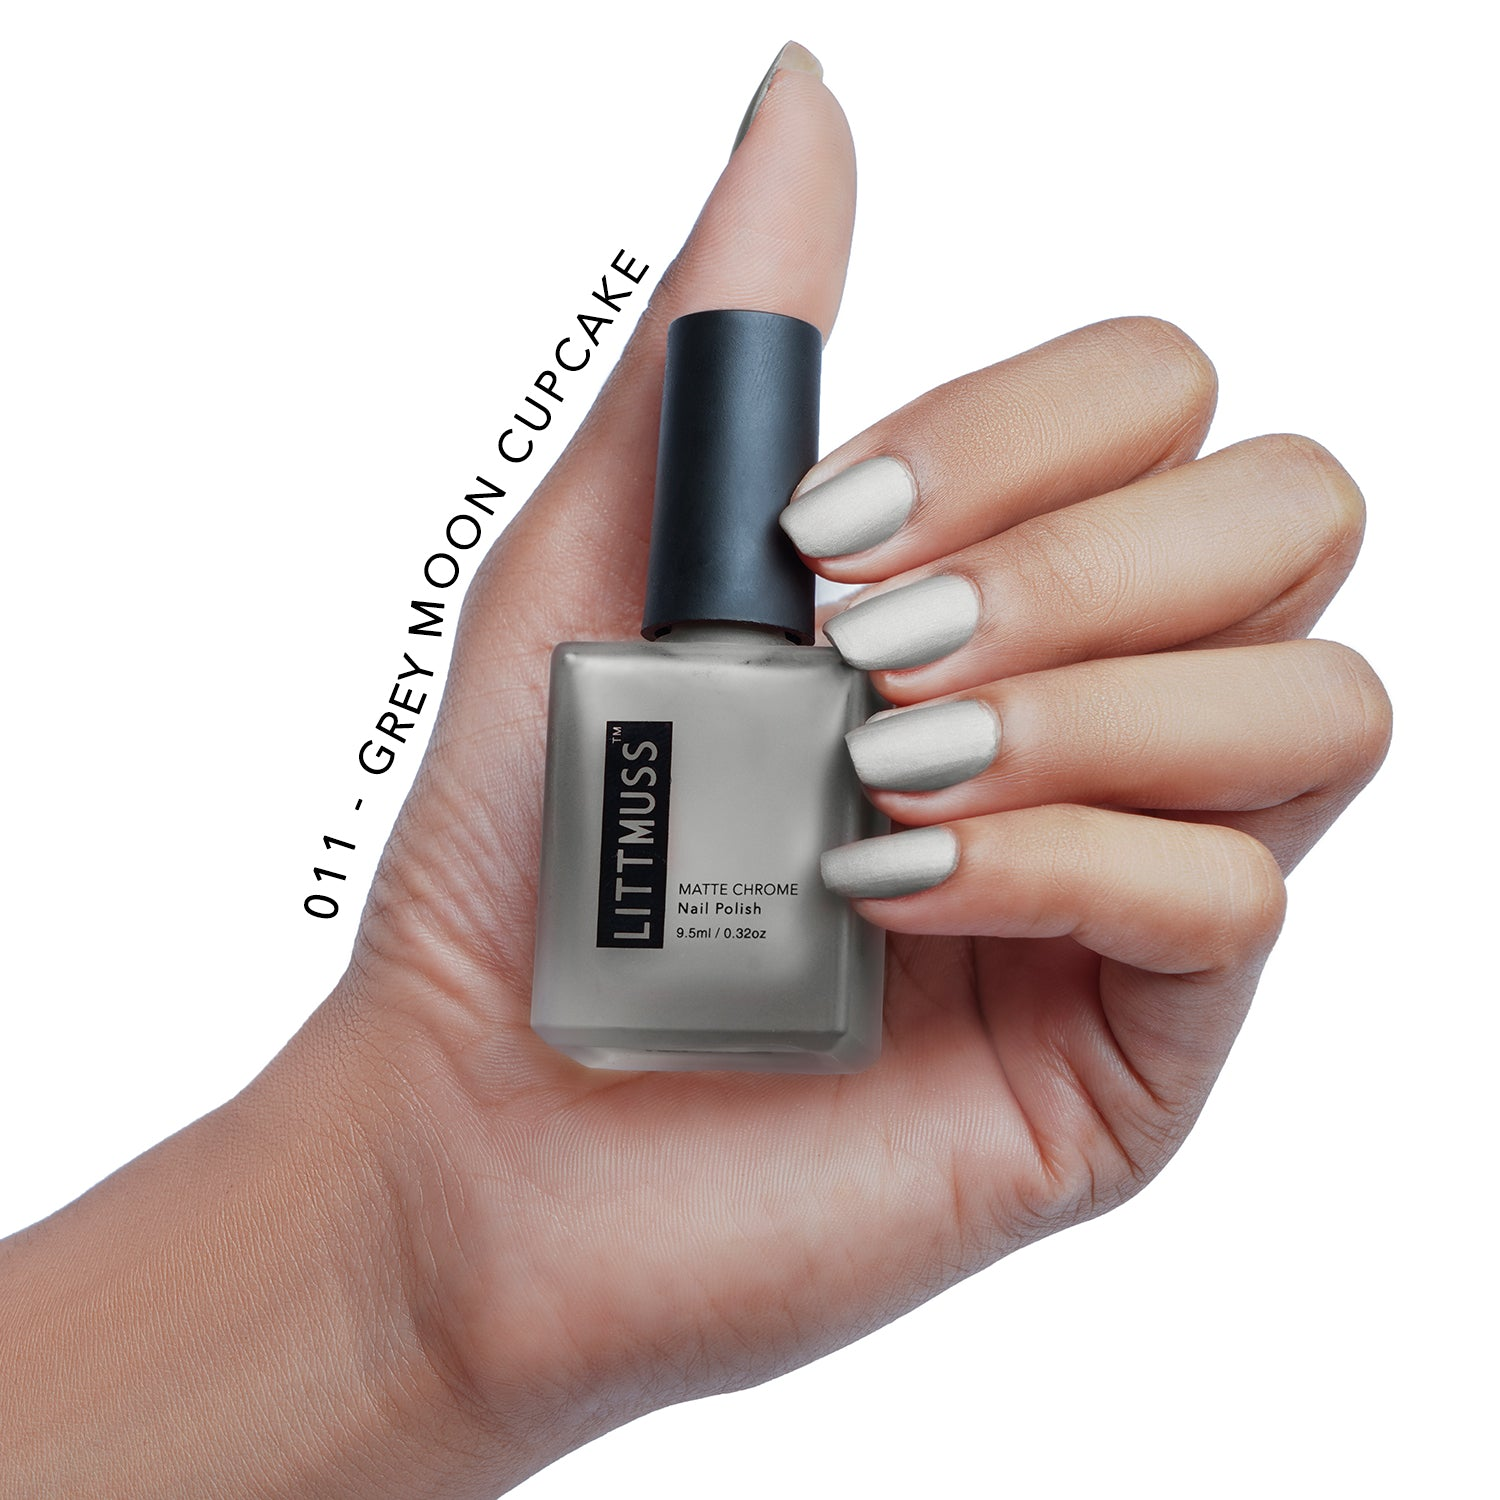 LITTMUSS Matte Chrome Nail Polish Shades of Grey Combo